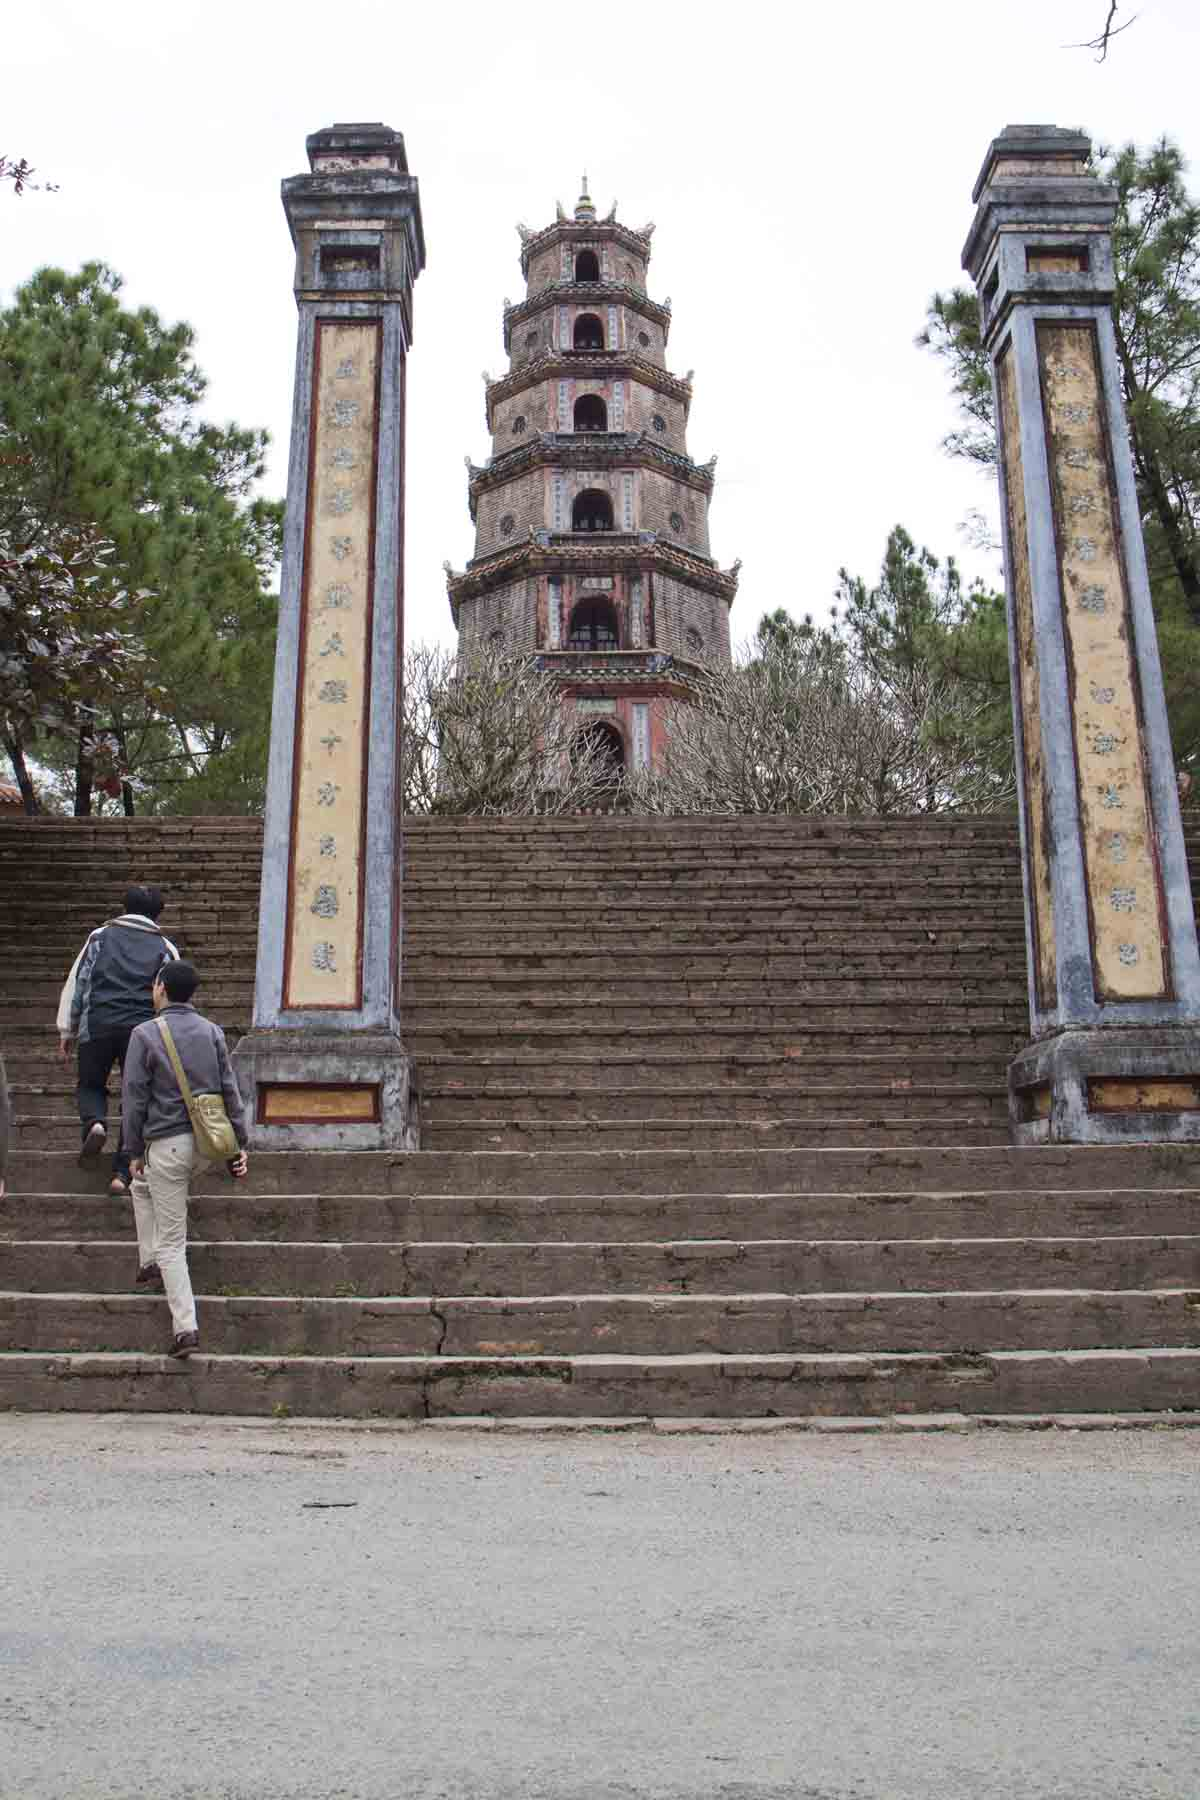 The steps to the Thien Mu Pagoda, Hue